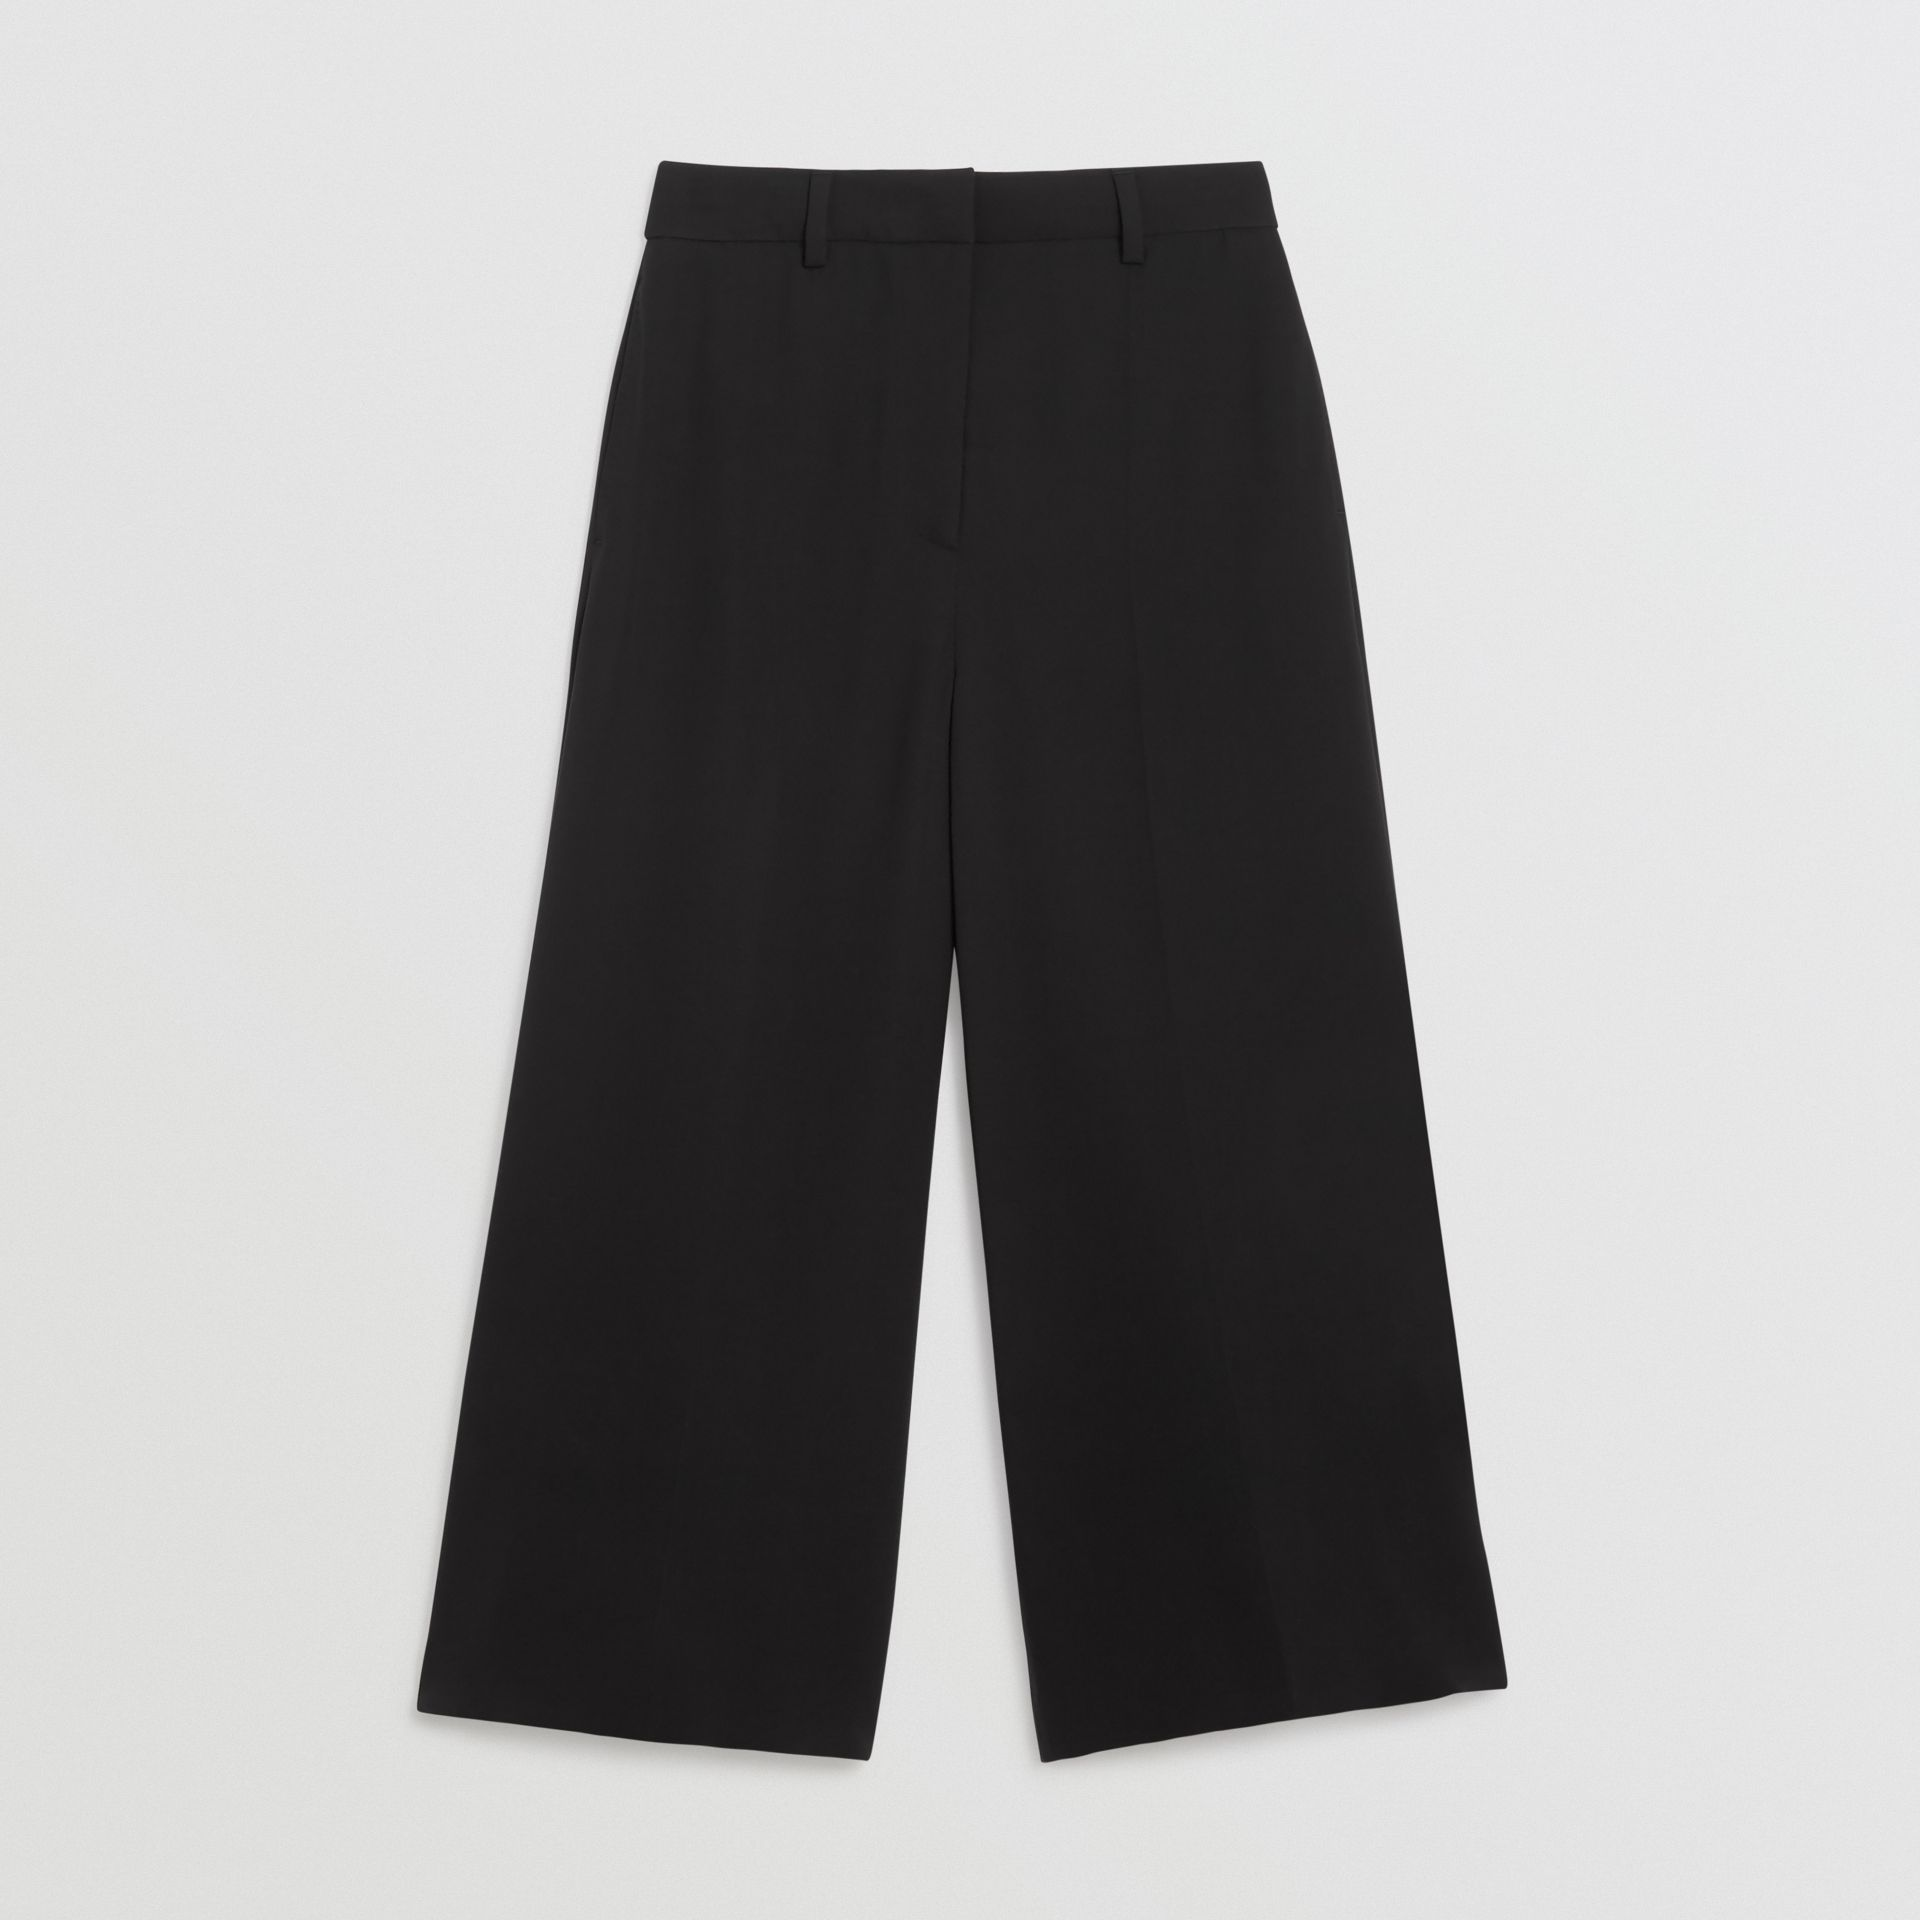 Silk Wool Tailored Culottes in Black - Women | Burberry United Kingdom - gallery image 3